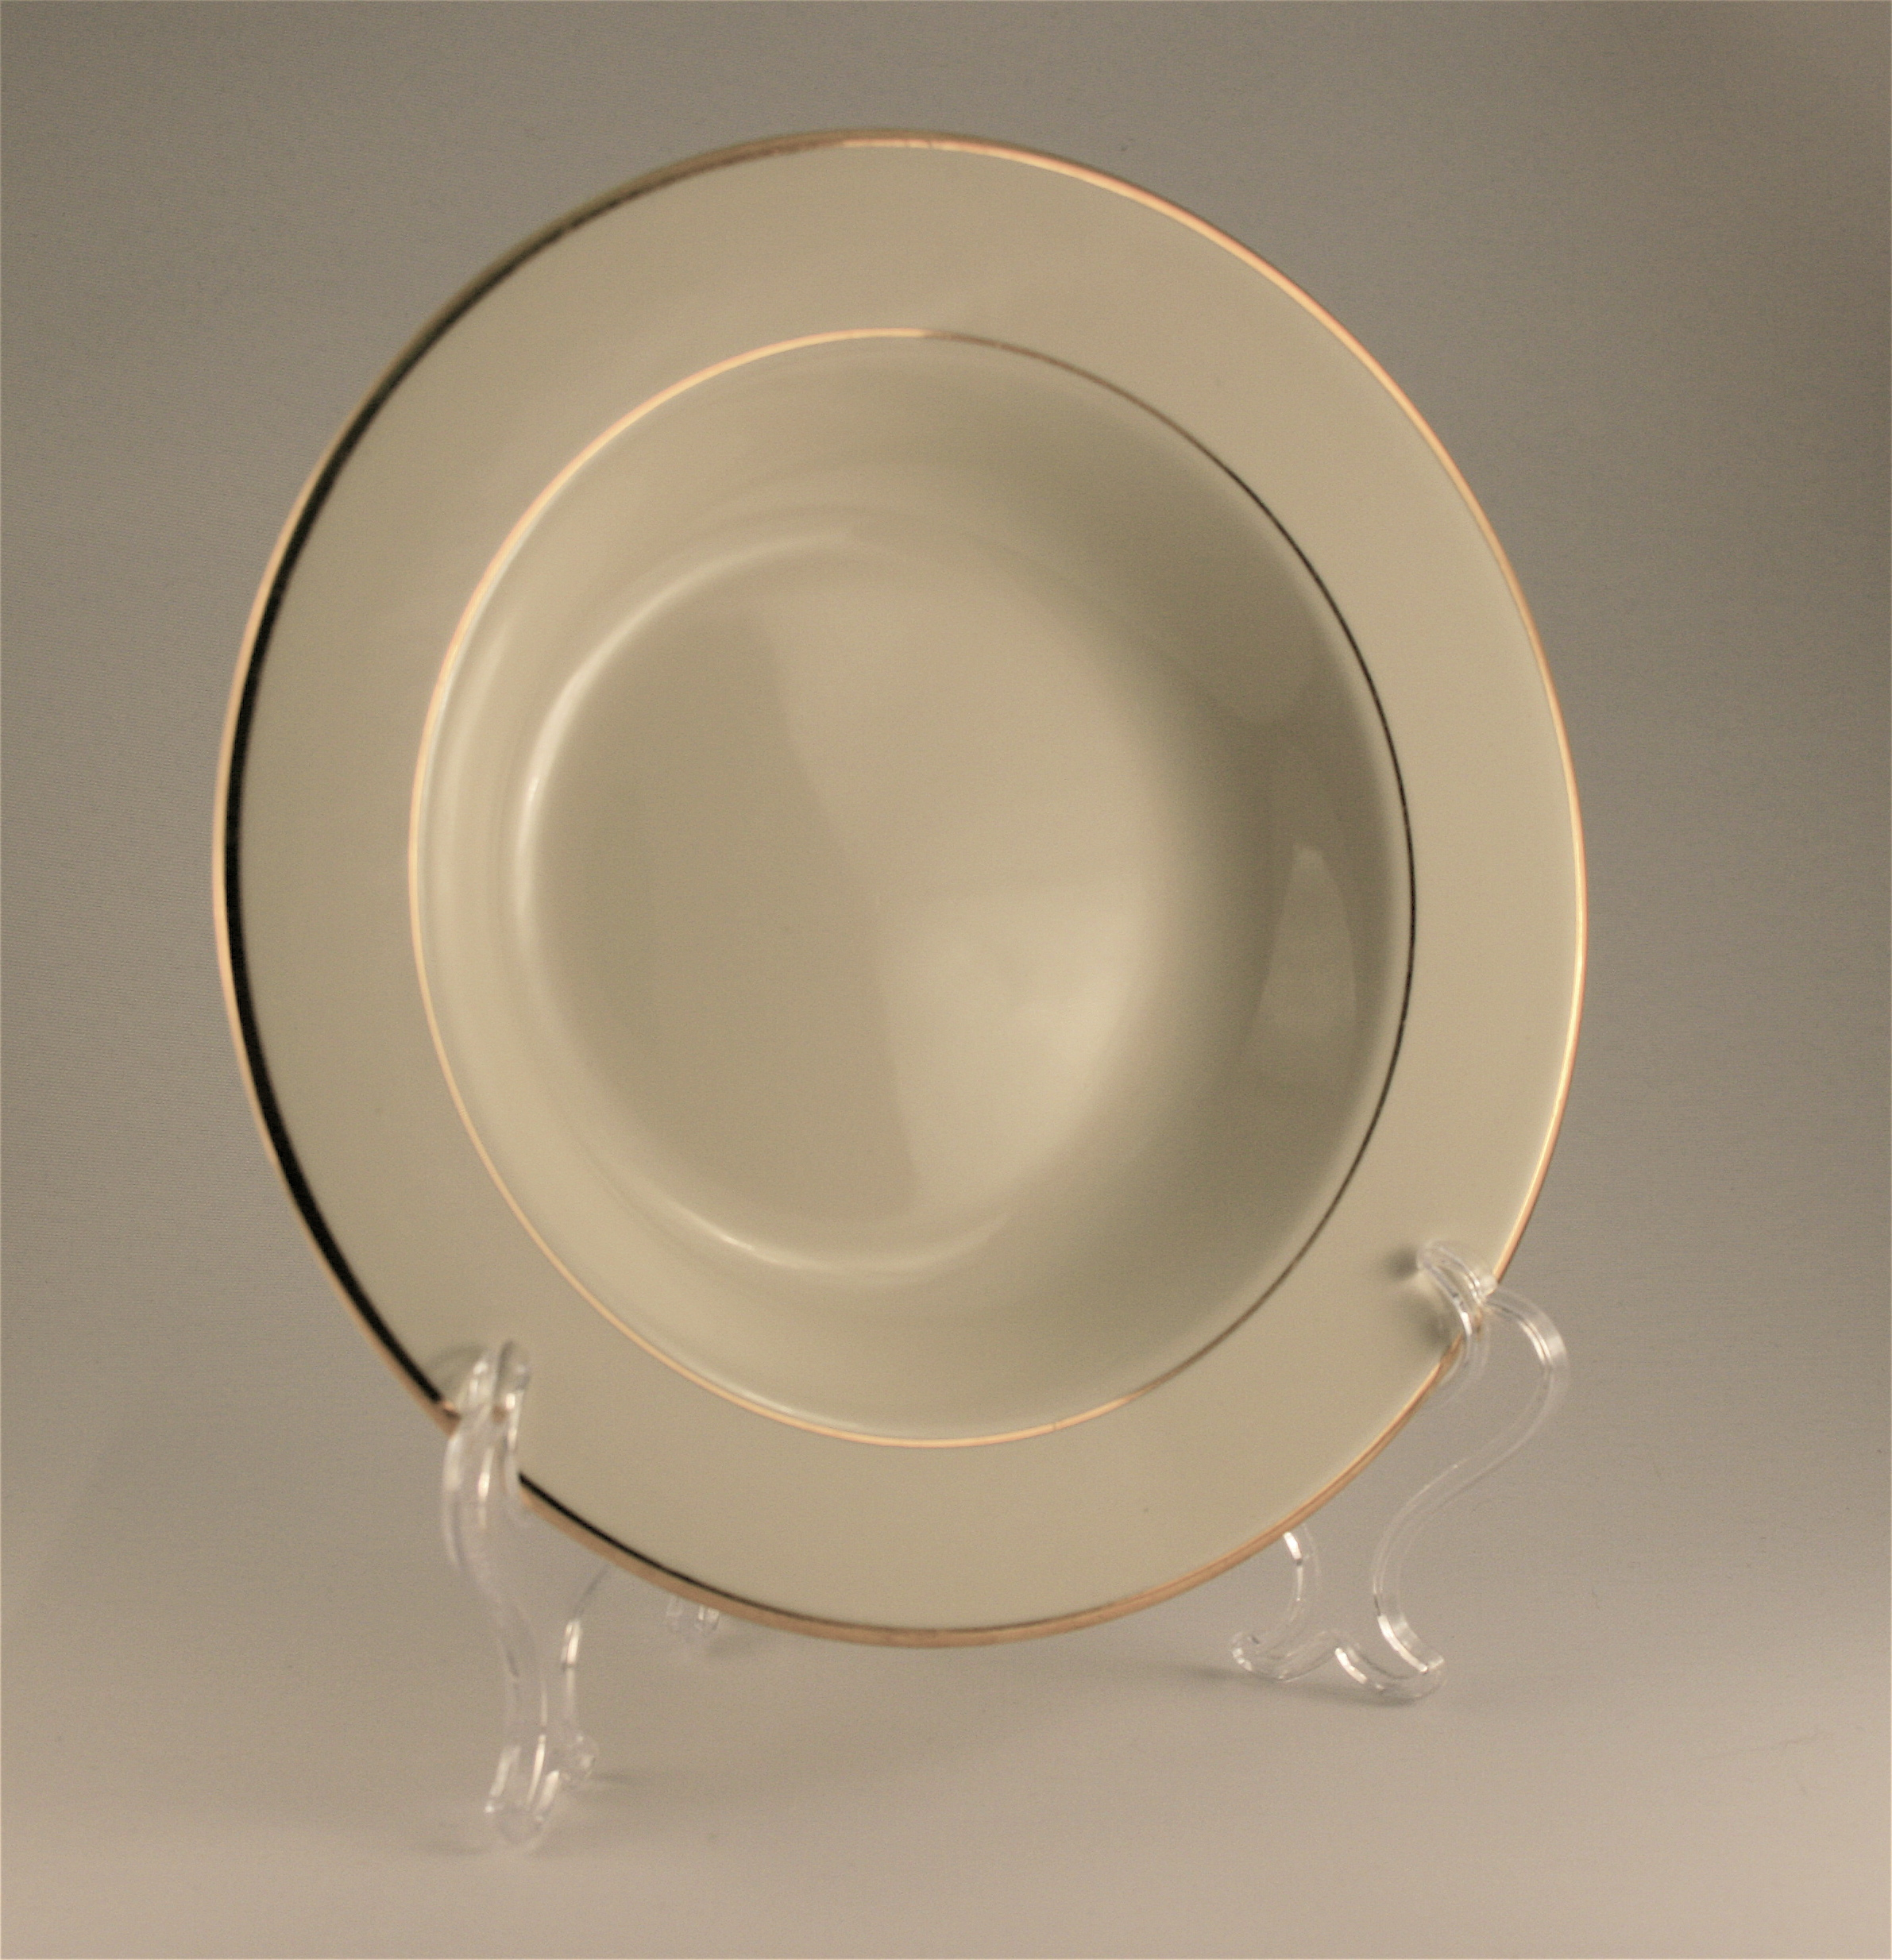 Rimmed Soup Bowl (Ivory and Gold) & Rimmed Soup Bowl (Ivory and Gold) - Alleen Company Catalog